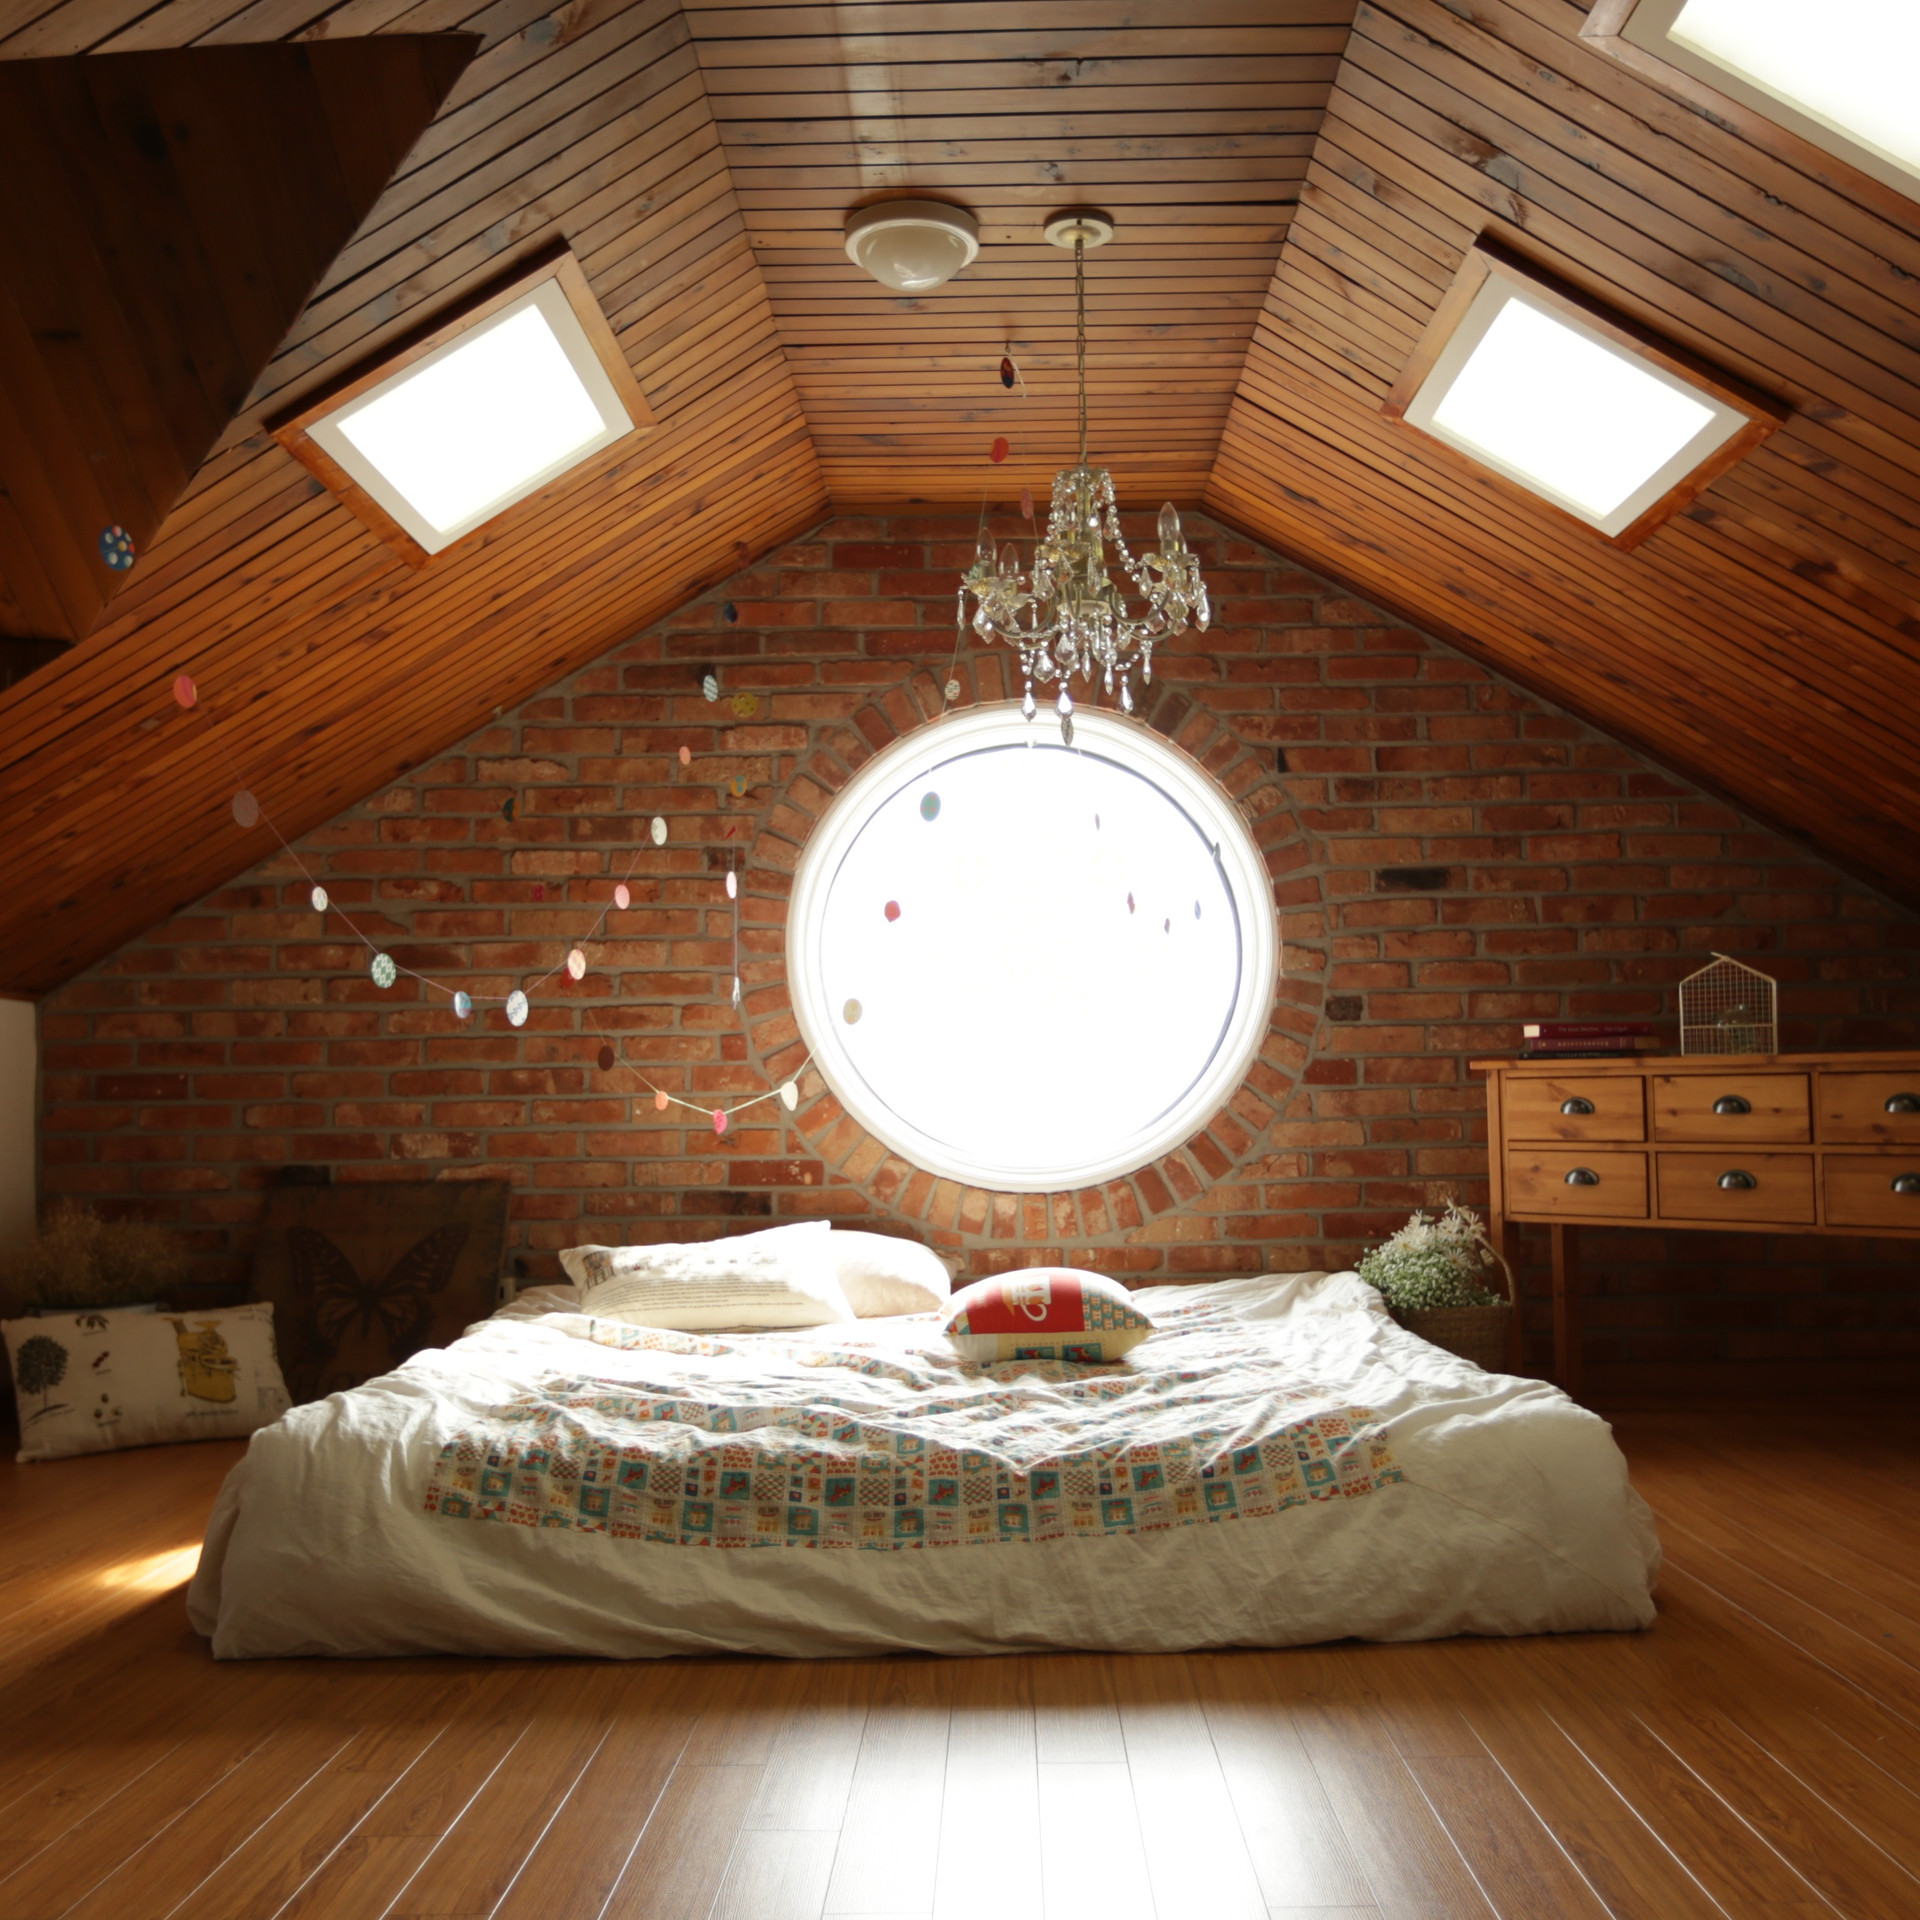 architecture-bed-bedroom-ceiling-271743.